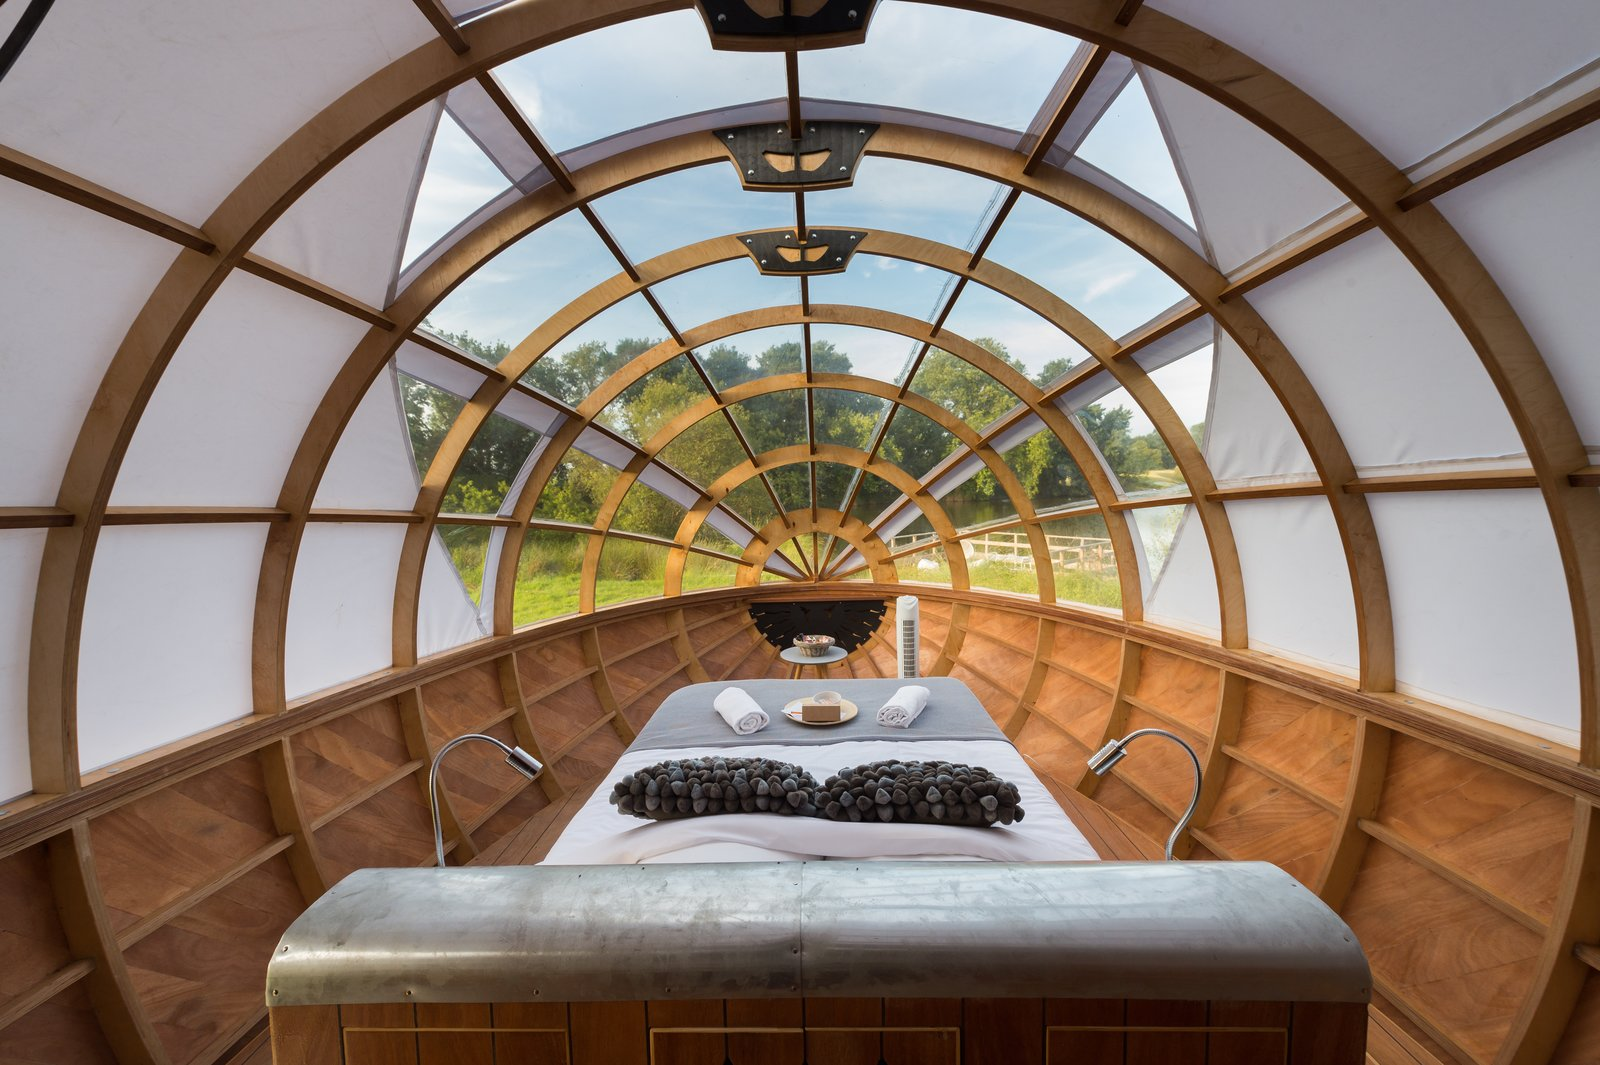 Bedroom, Bed, Accent Lighting, and Medium Hardwood Floor  Photo 2 of 7 in A Fantastic Egg-Shaped Camping Pod Along the Loire Estuary